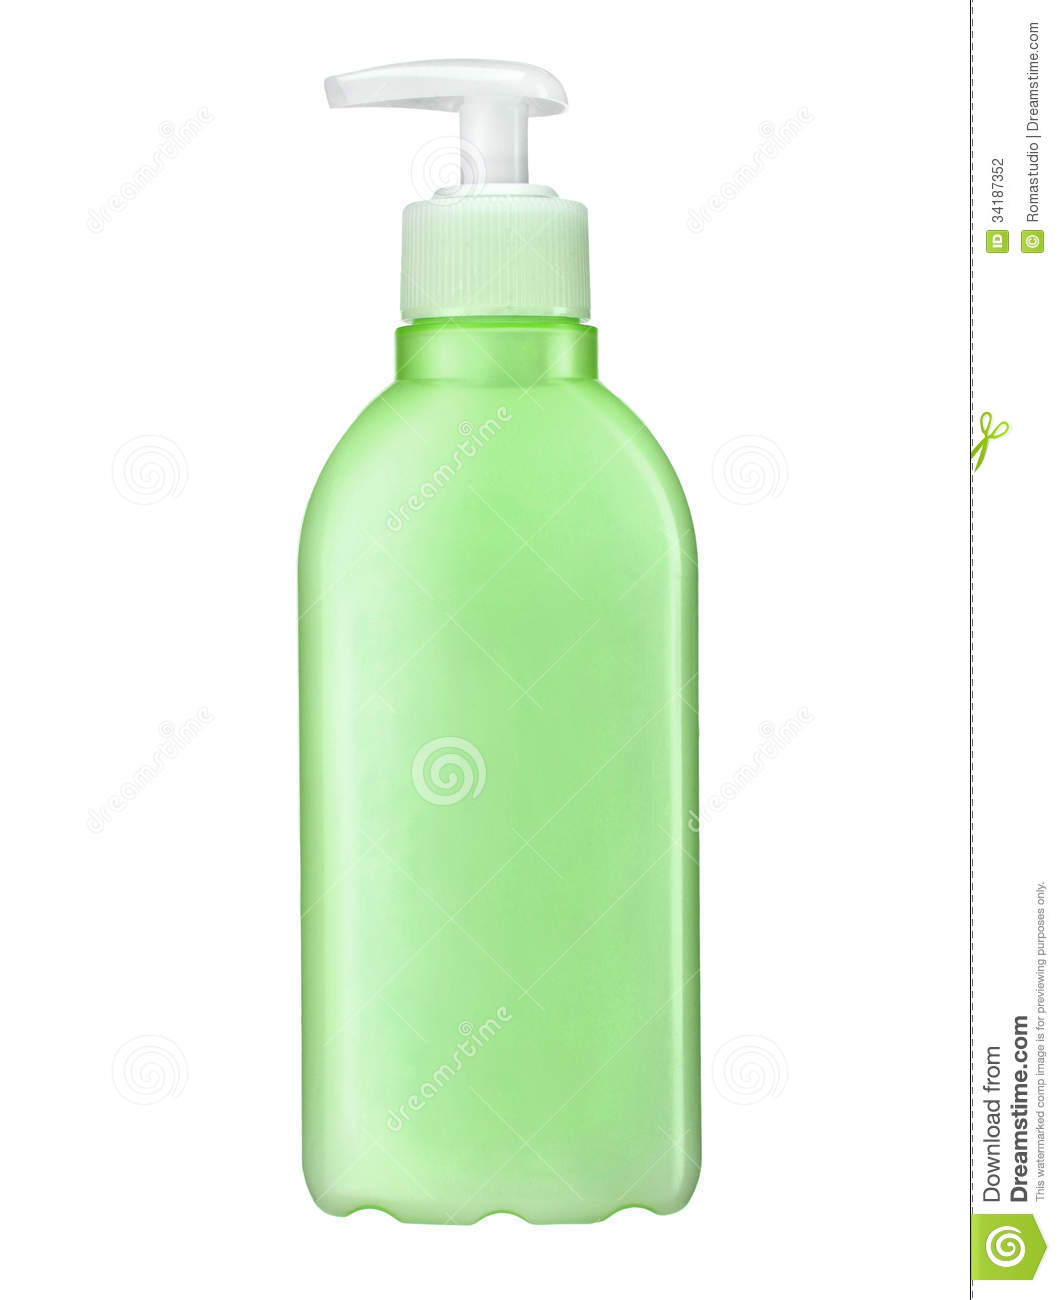 ... of green plastic bottle with pump - isolated on white background